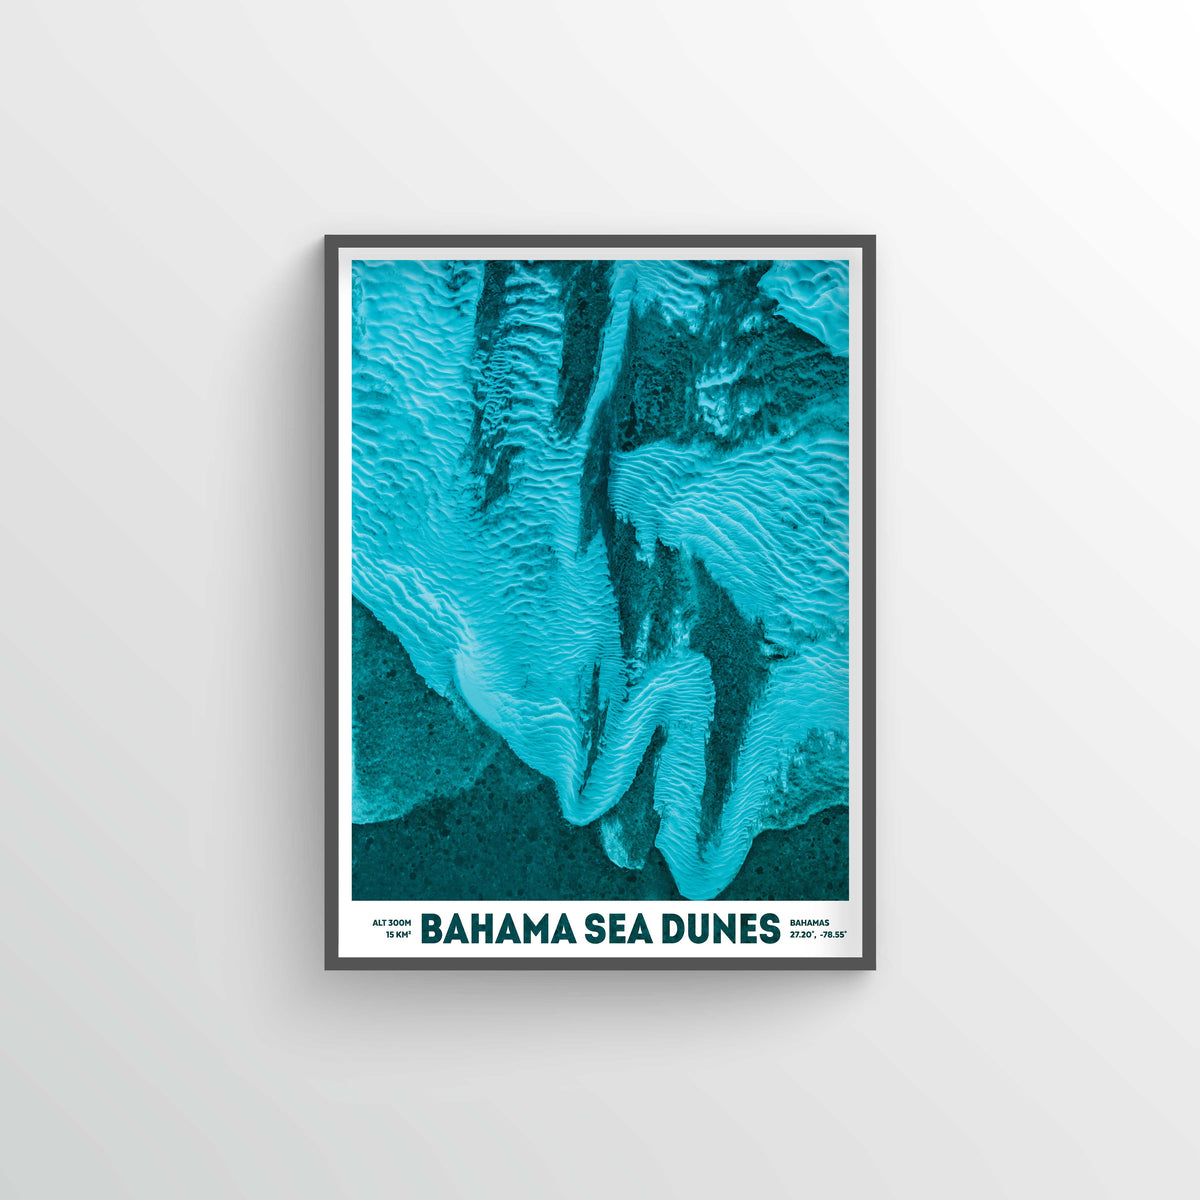 Bahama Sea Dunes Earth Photography - Art Print - Point Two Design